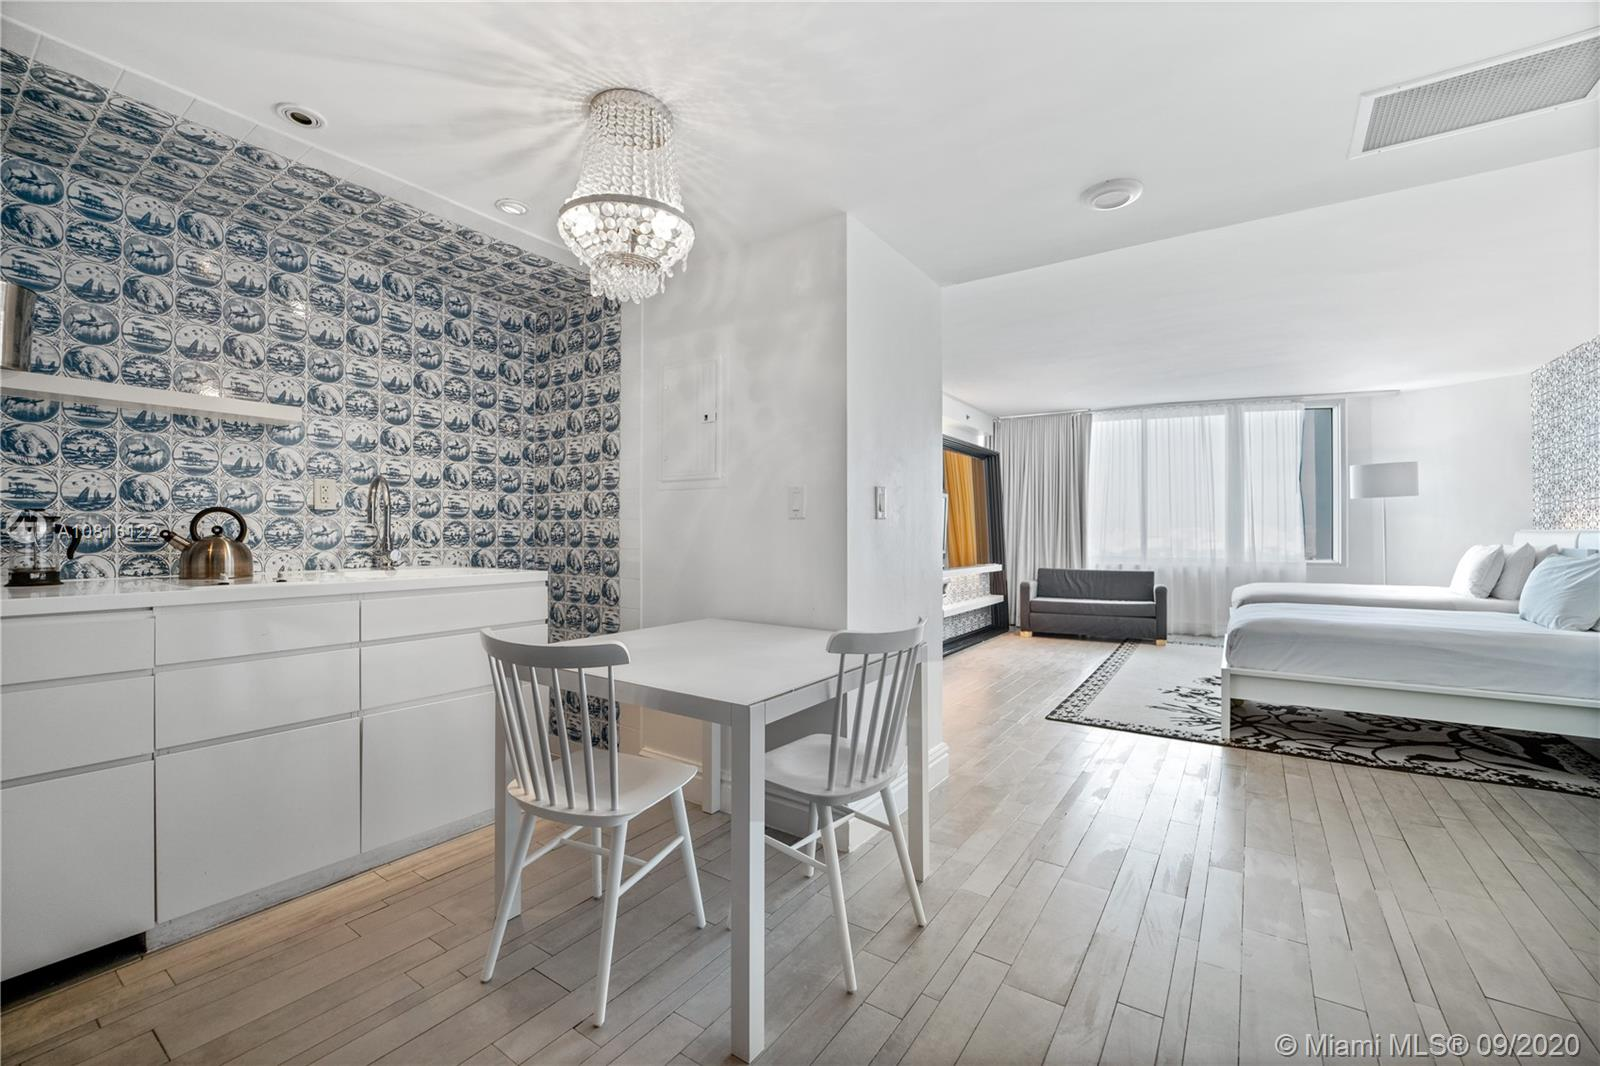 One of Miami's most trendy, 5-star condo-hotels. Owner an income producing property to offset your expenses. Live, rent or do both. Unit currently managed by on-site approved third party management company (NOT IN HOTEL PROGRAM). Unit has upgraded furniture 2018/2019 Assessments paid!